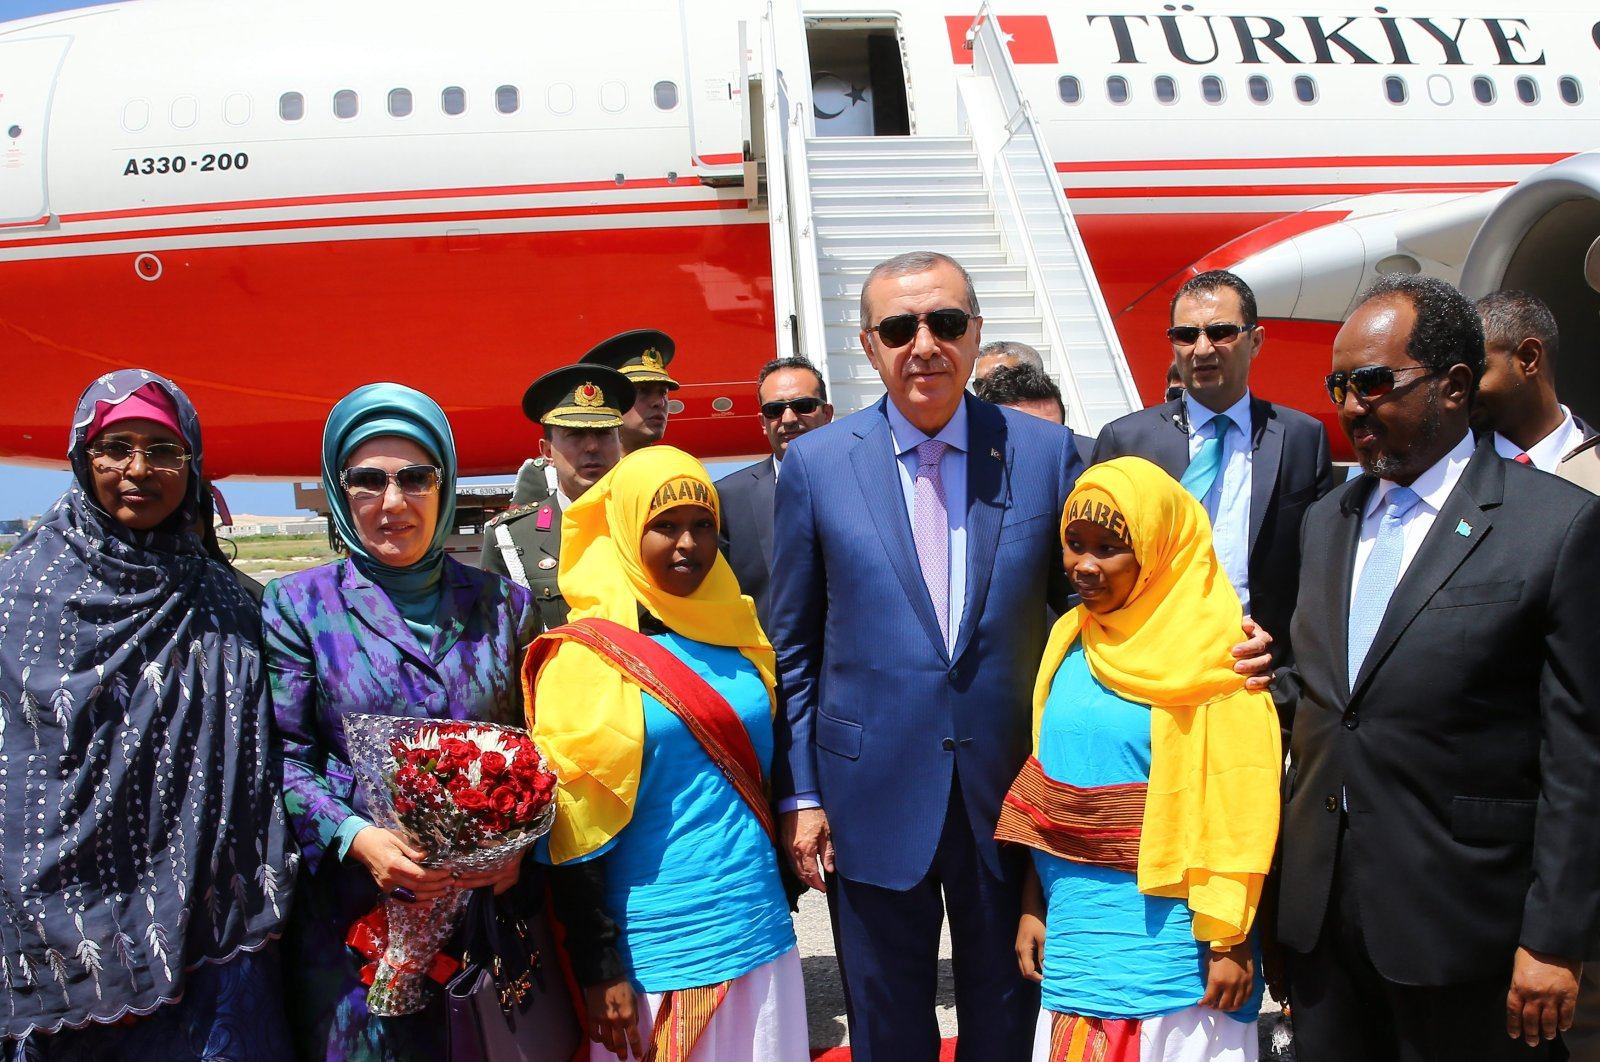 President Recep Tayyip Erdoğan and his wife Emine Erdoğan are greeted by officials during their visit to Mogadishu, Somalia, June 4, 2016. (AA Photo)